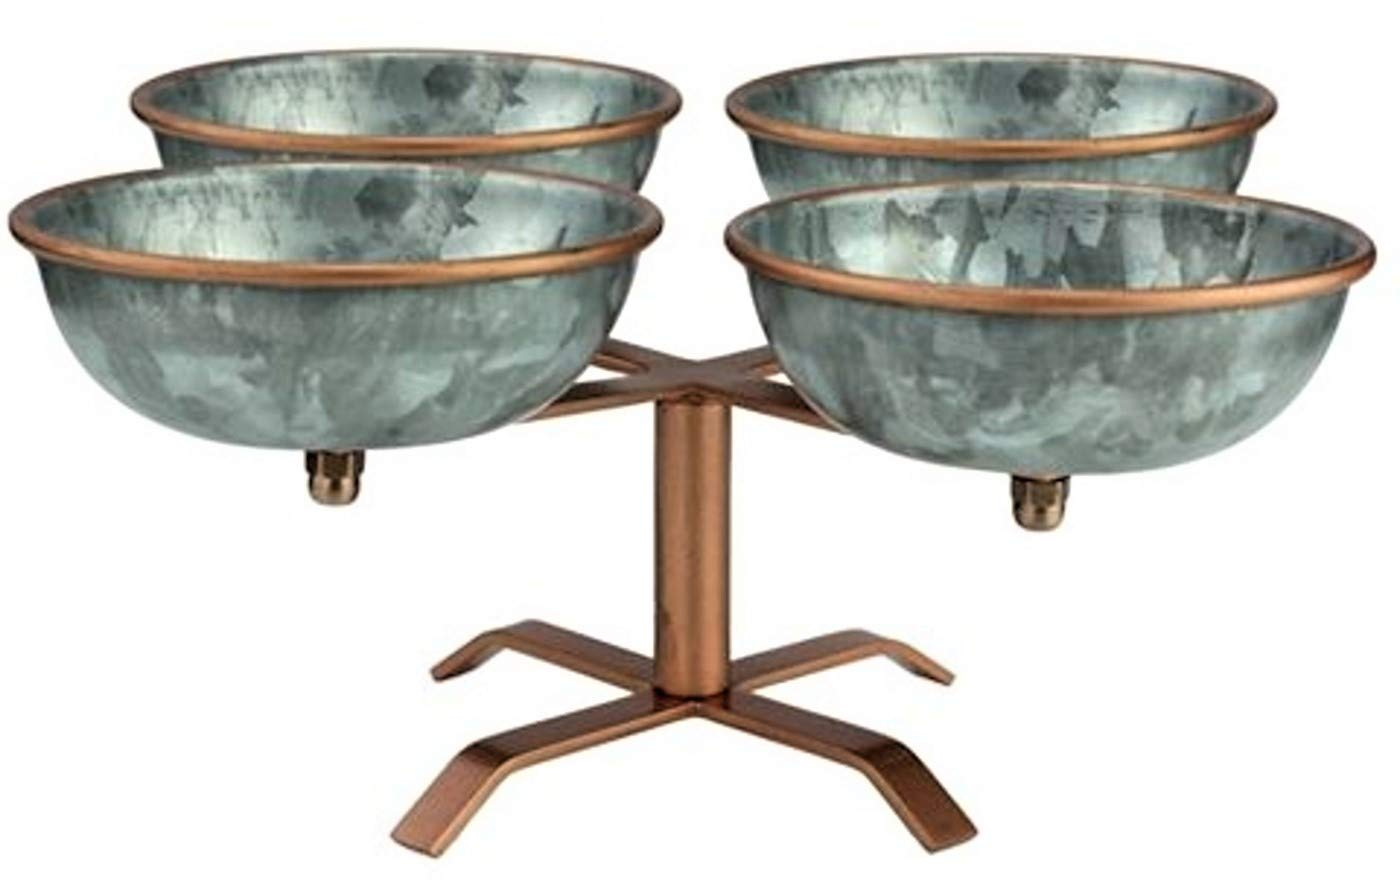 Galrose ENTERTAINMENT CONDIMENTS SERVING BOWL SET ON STAND - 4 Galvanized Iron Bowls for nuts chips dips snacks candy jams sauces pickles with Rose Gold Lip & Stand Unique Industrial Chic Gift Idea